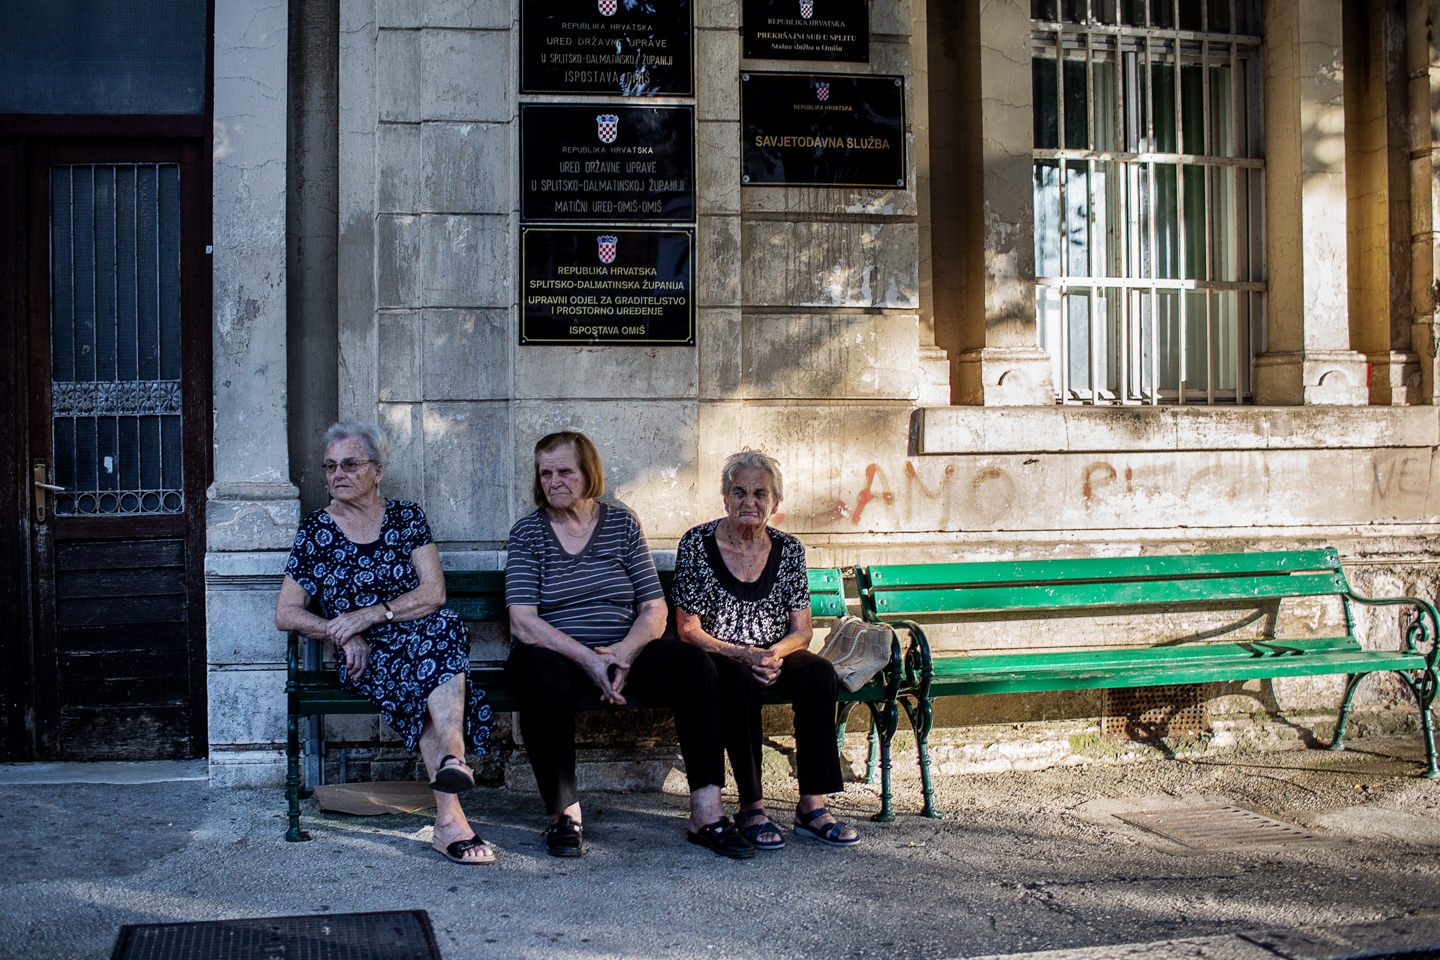 Slavic classic - old ladies sitting on the bench and gossipin